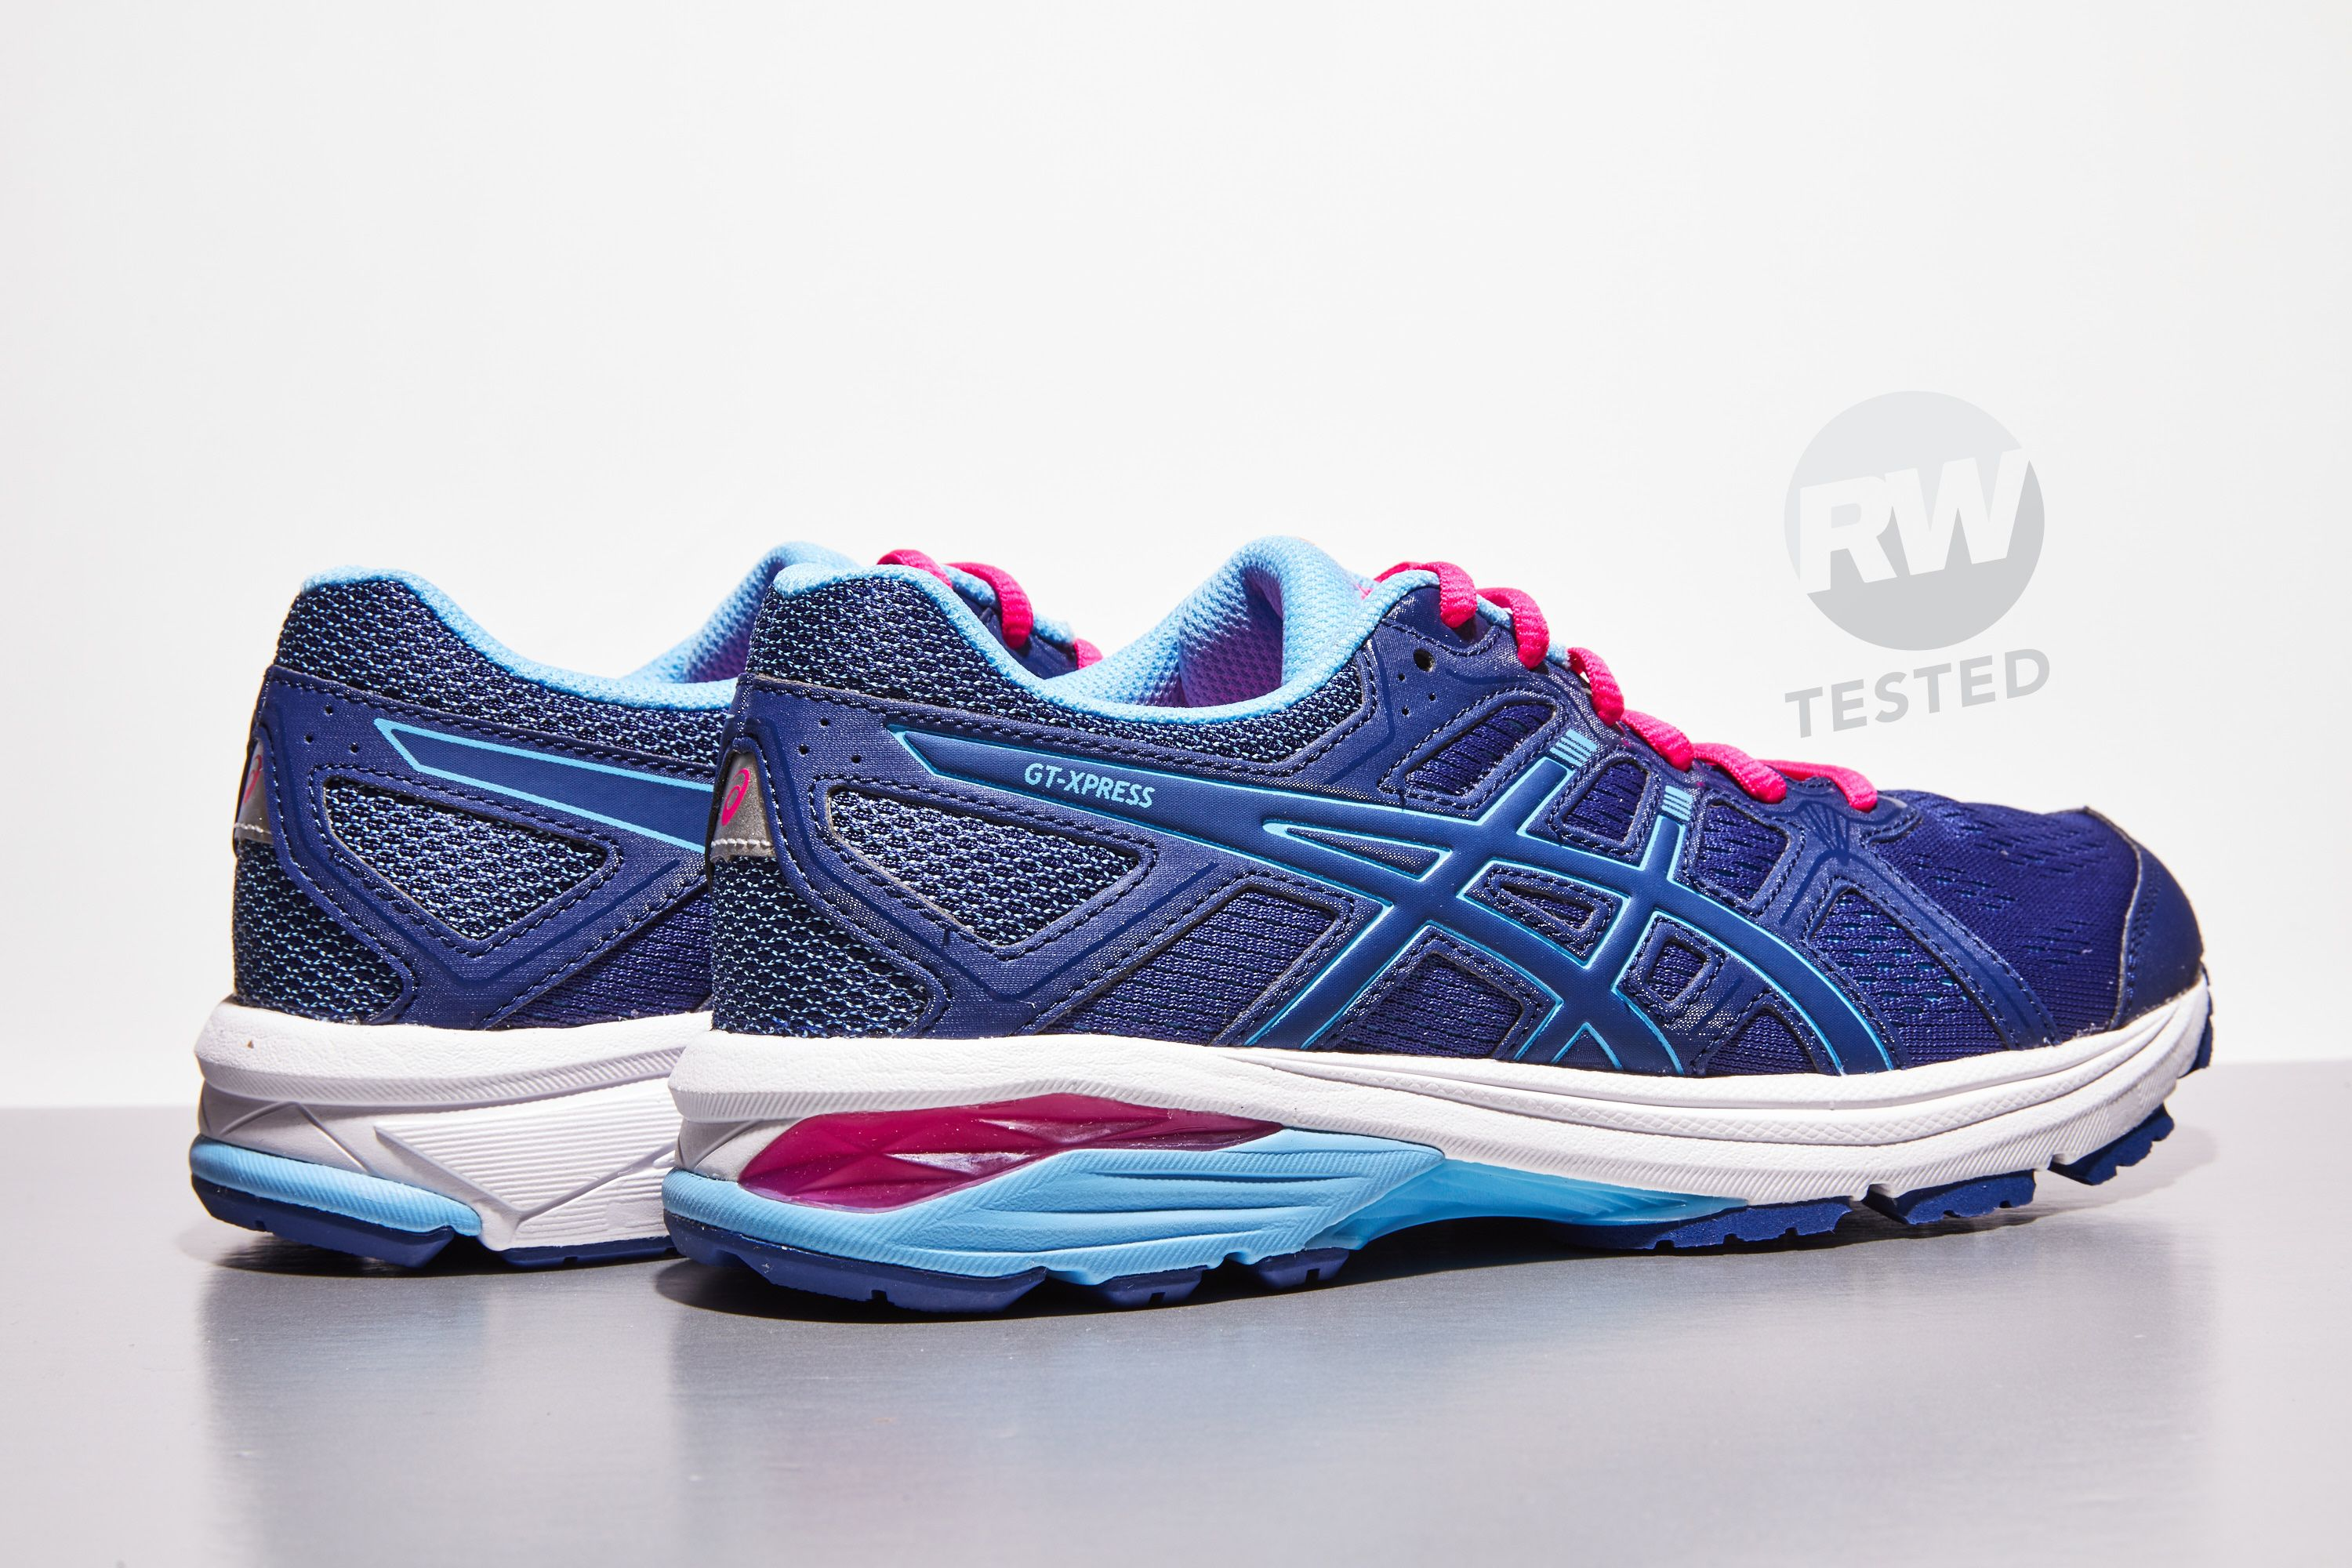 Asics GT Xpress Review – Affordable Running Shoes